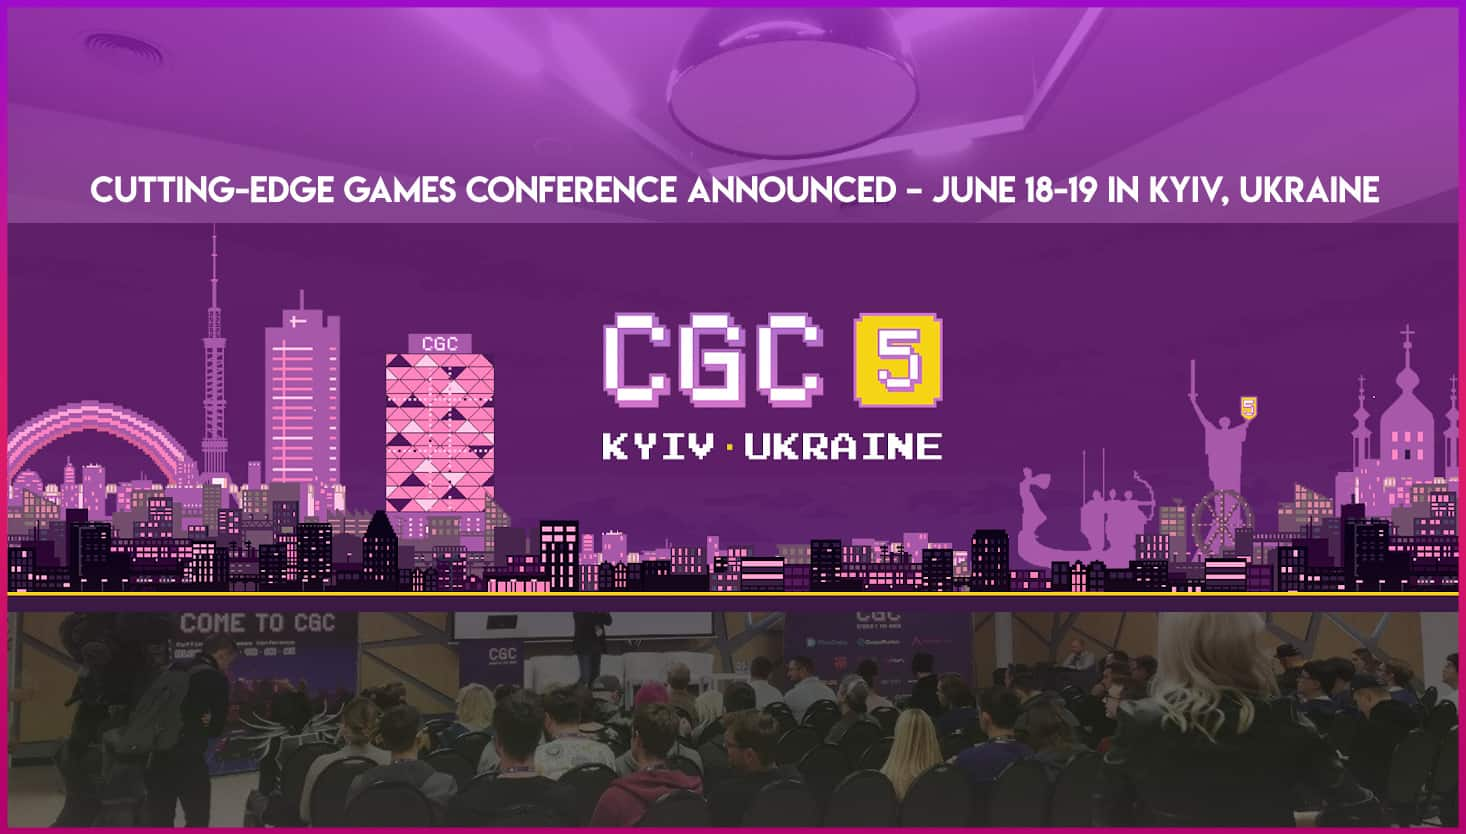 CGC Cutting-edge conference